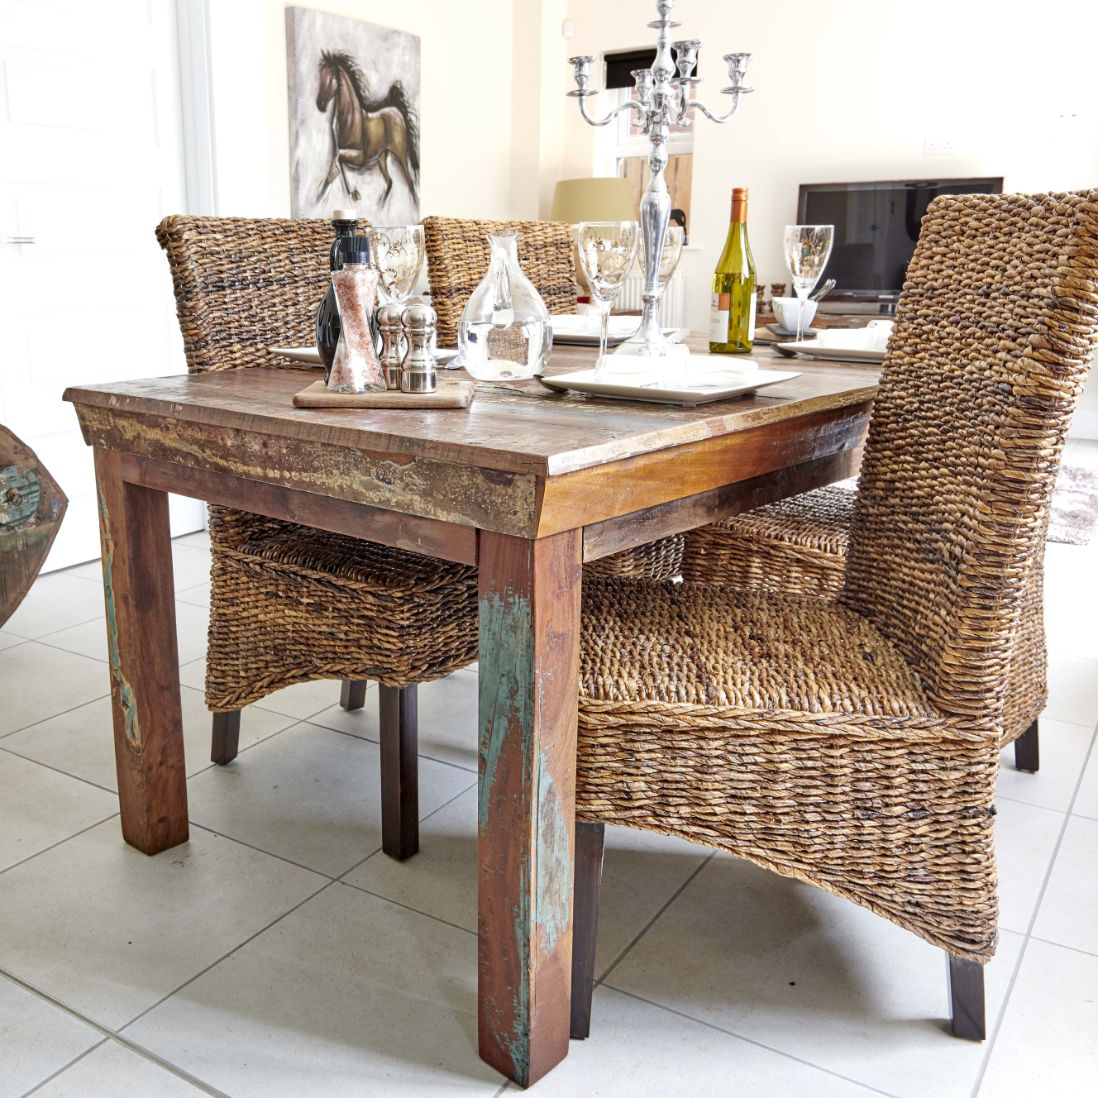 Rattan Dining Chairs, Wicker Rattan Dining Room Chairs